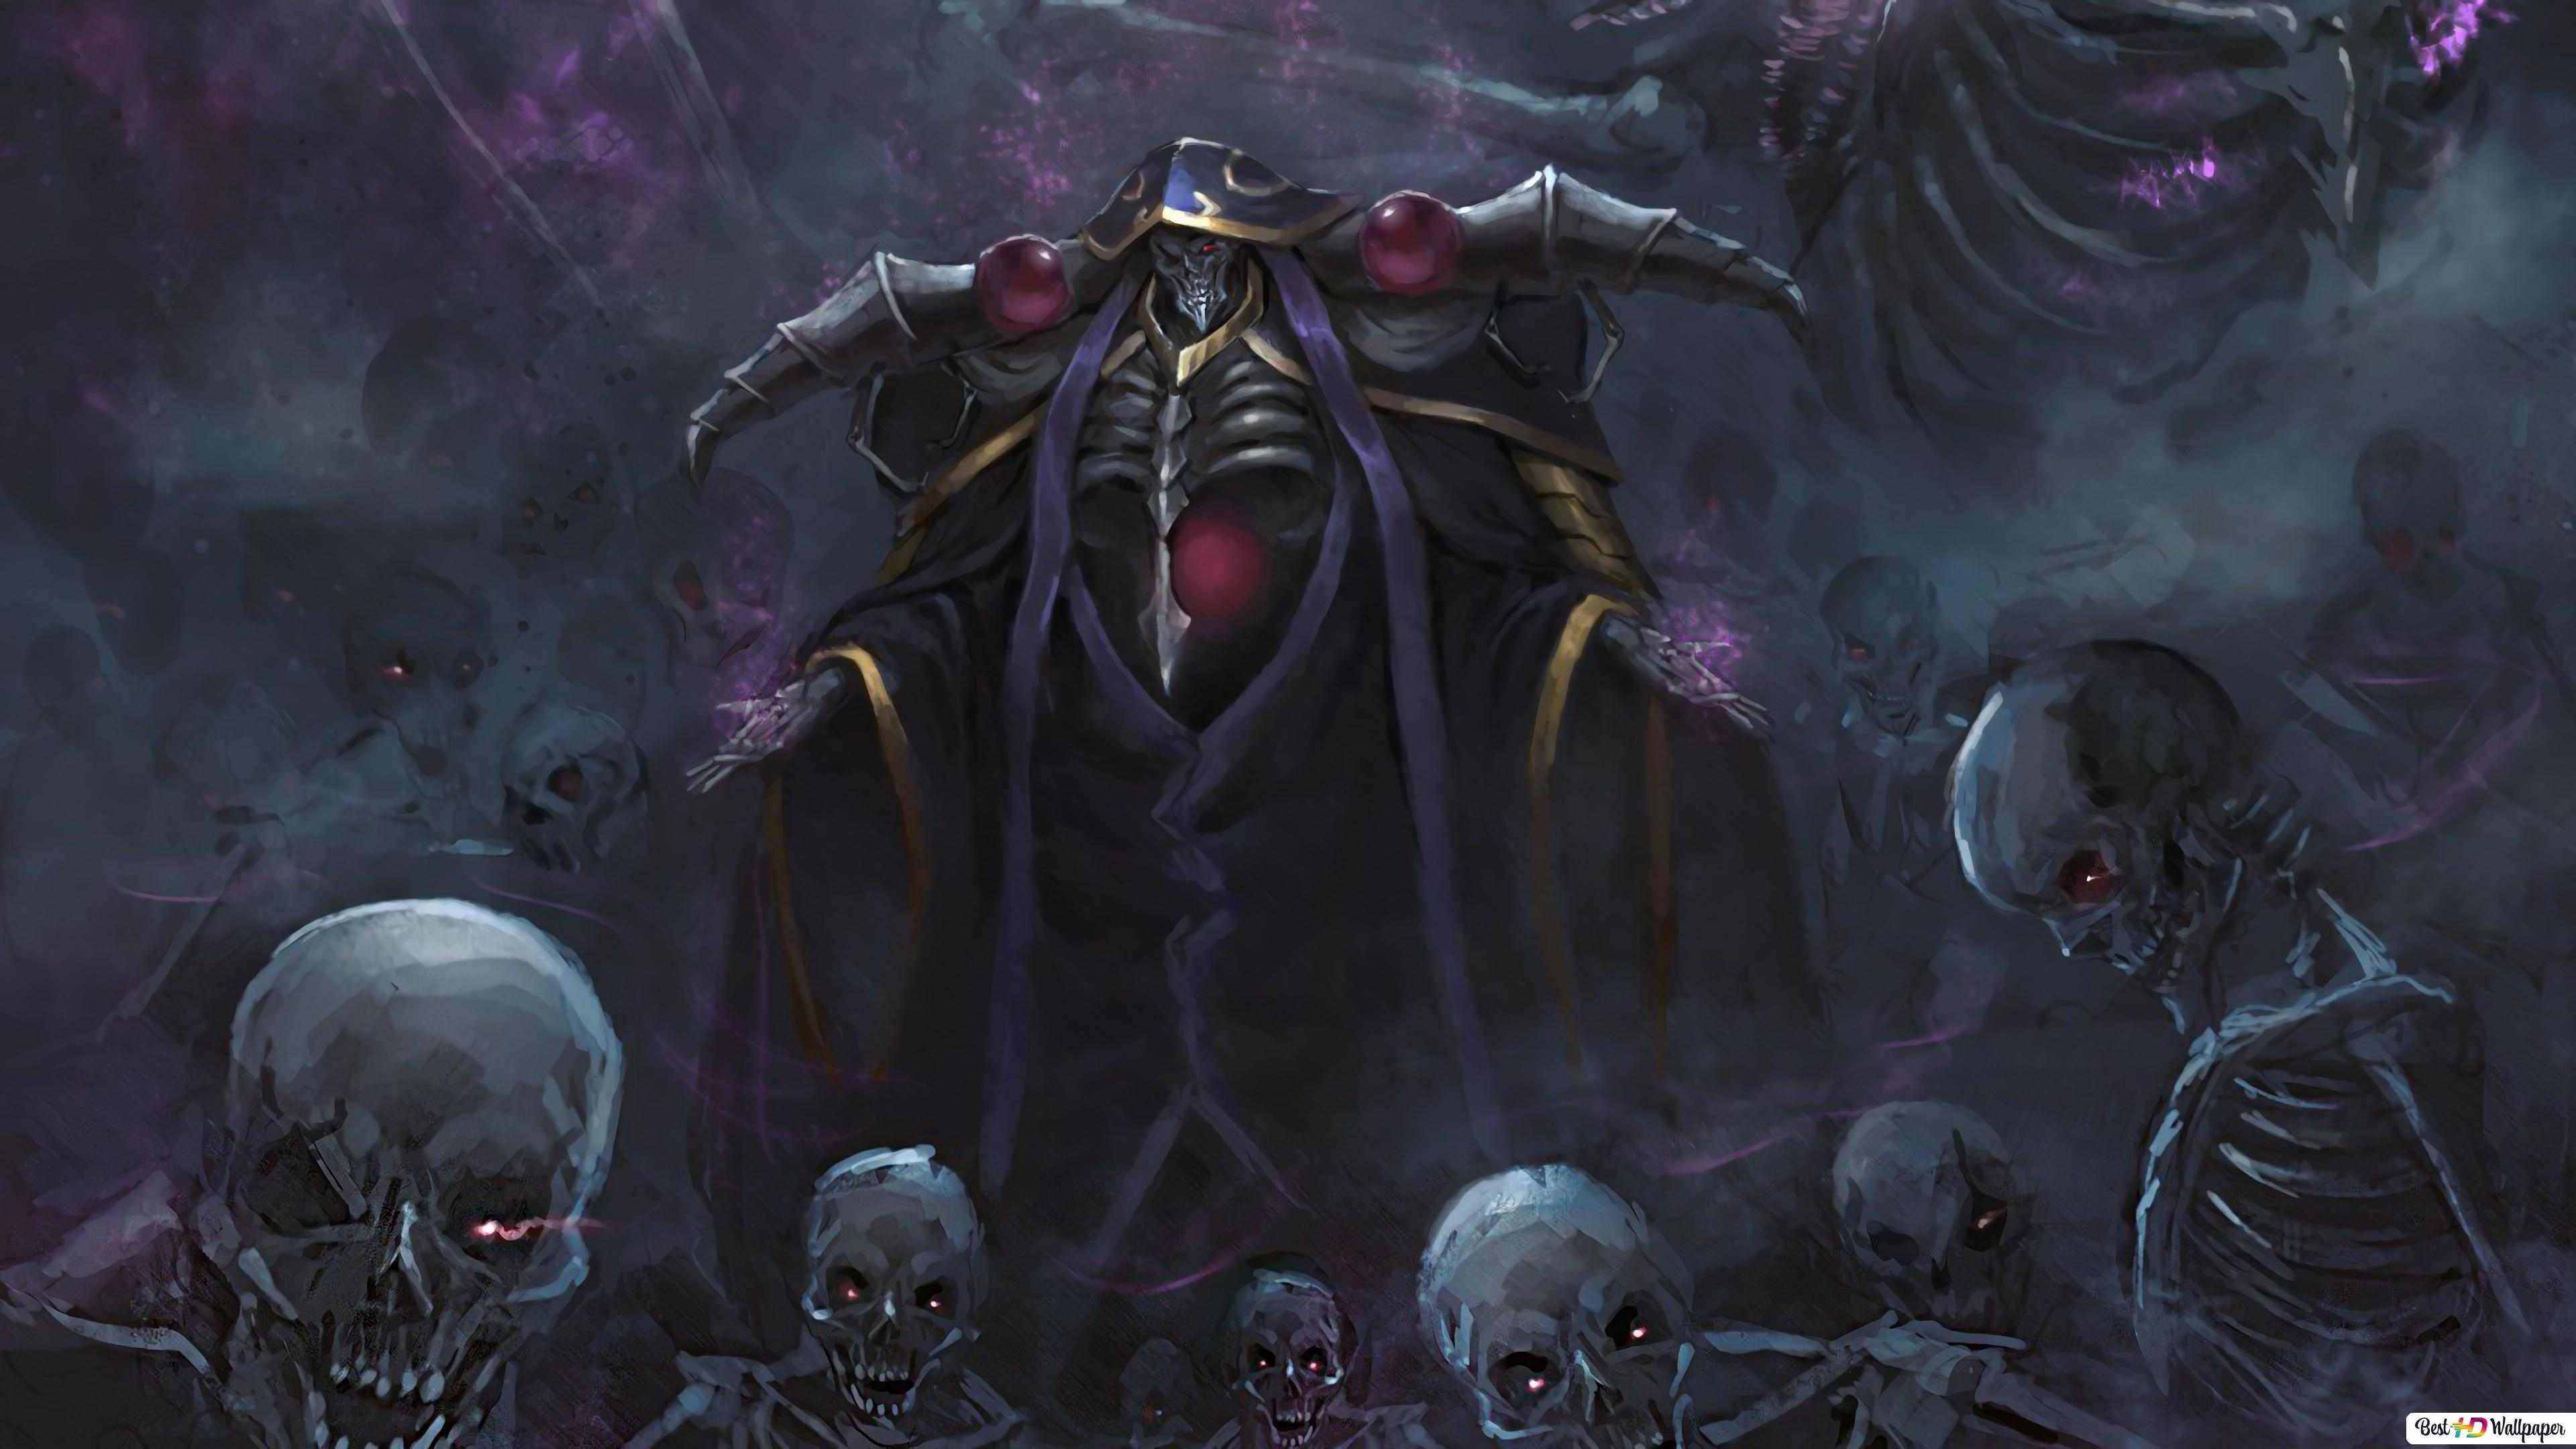 Overlord Xbox 360 HD wallpaper download